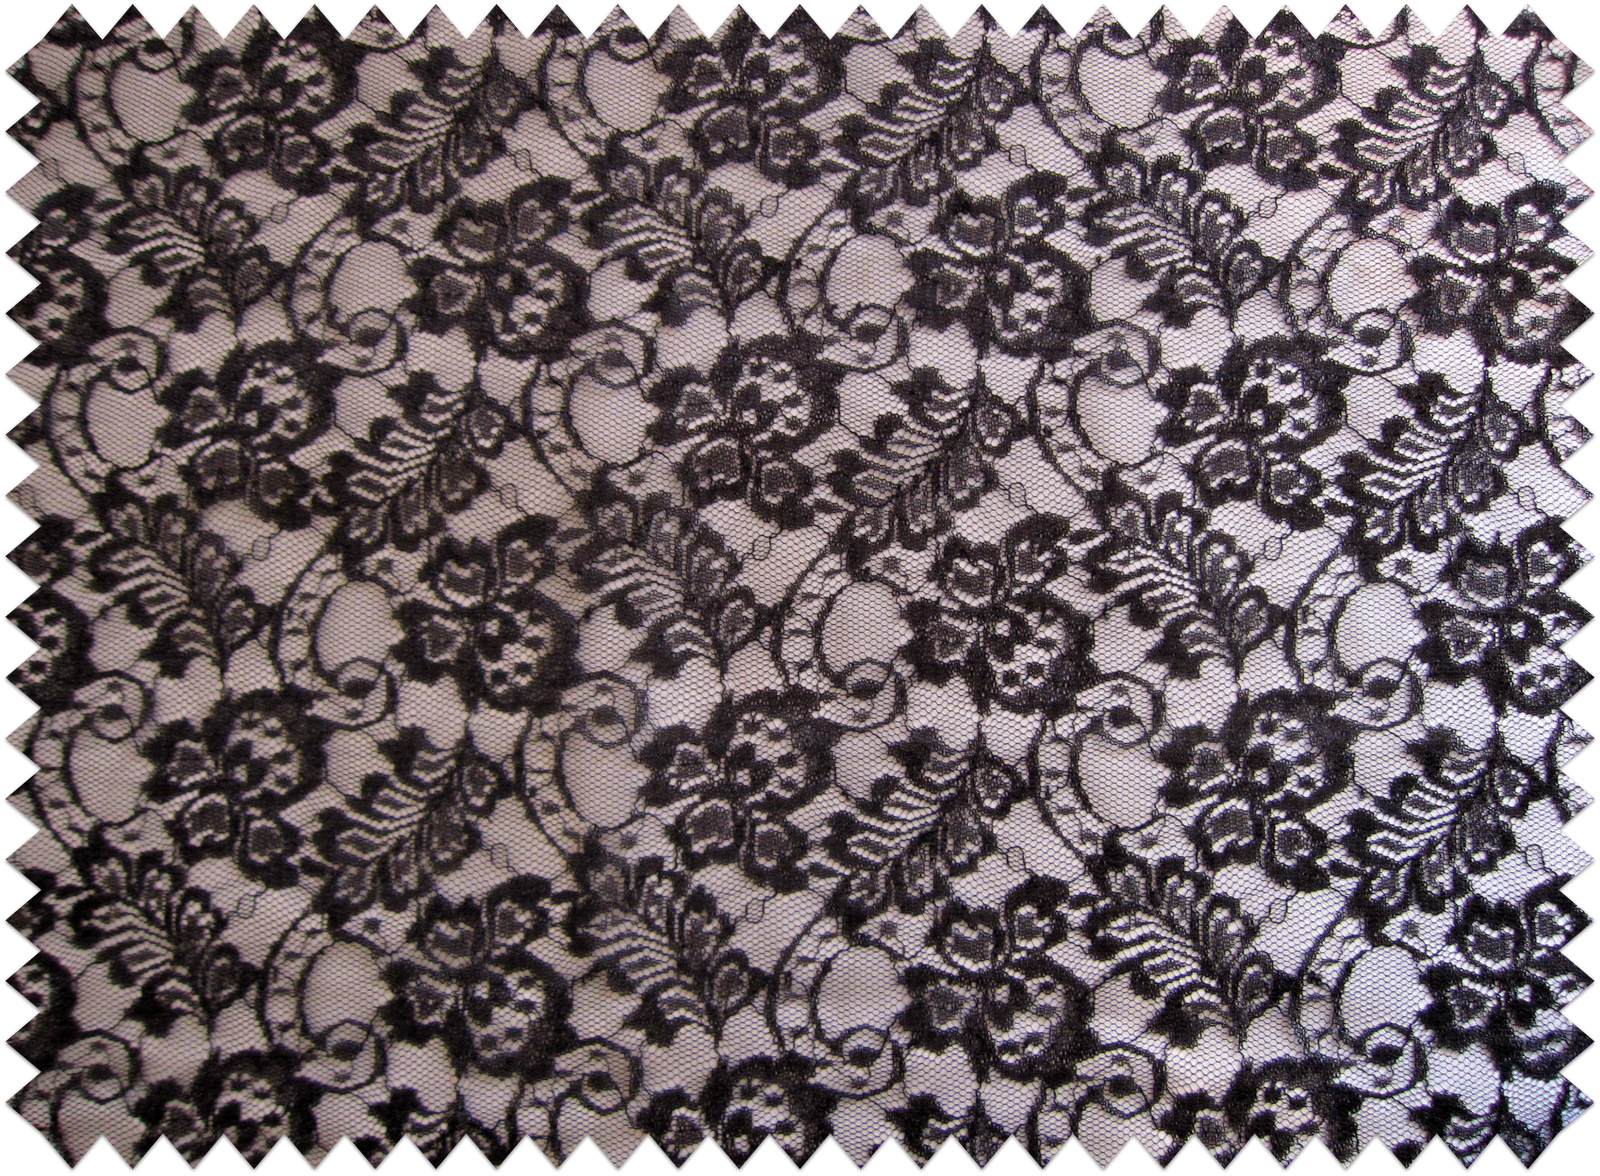 What s in the. Lace clipart lace fabric